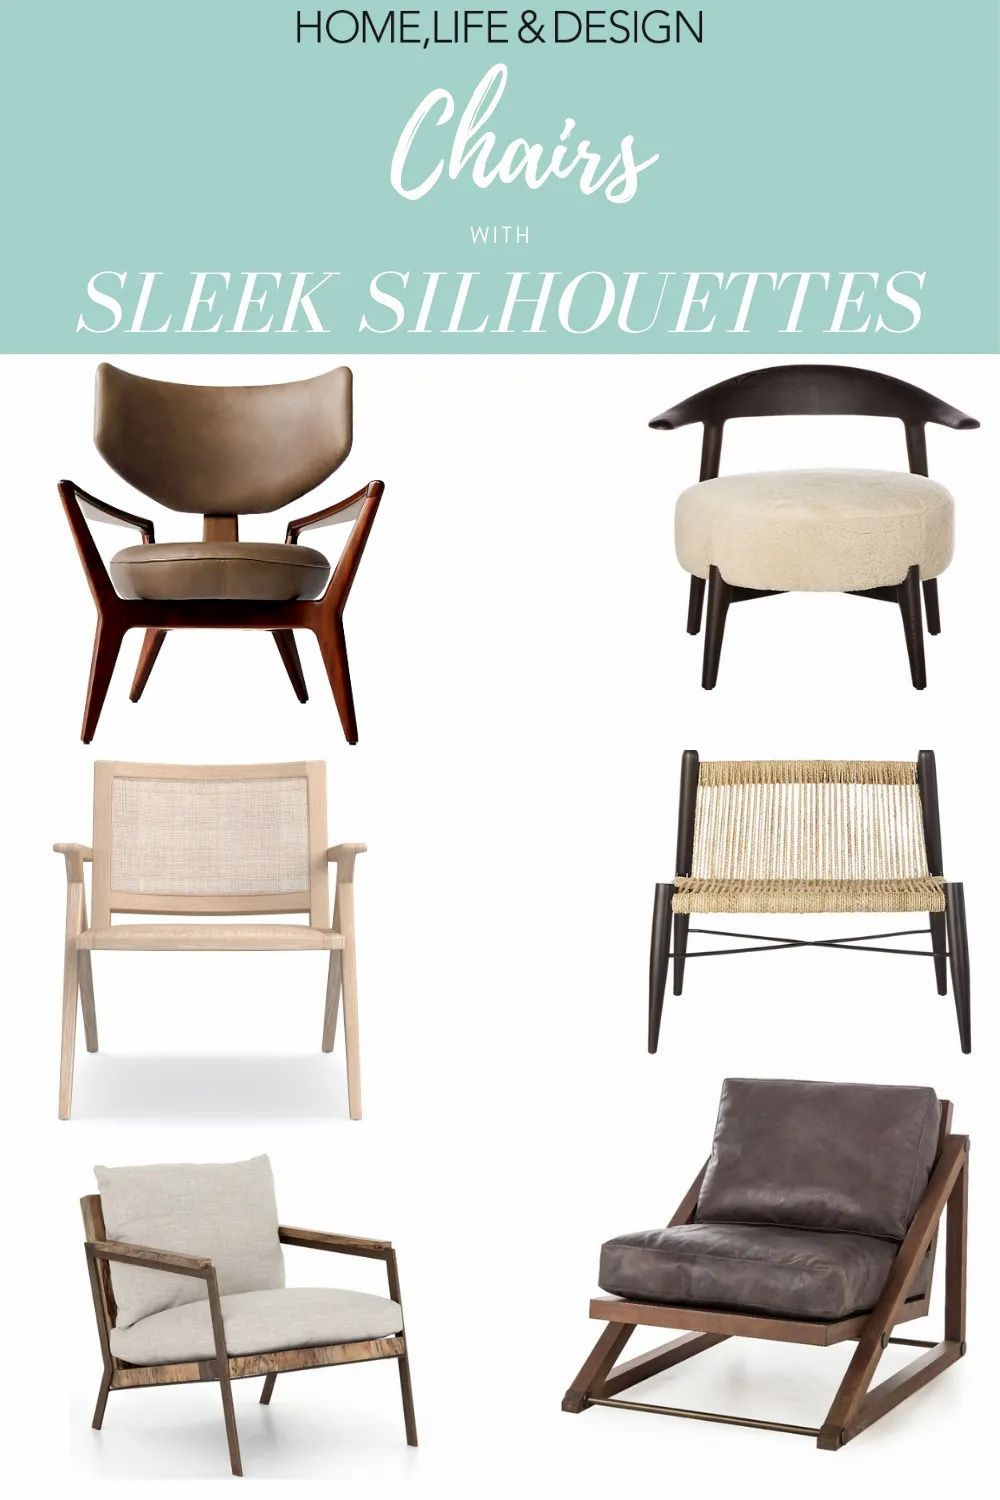 Sleek Chair Designs for Every Home Design Style in 8  Farm